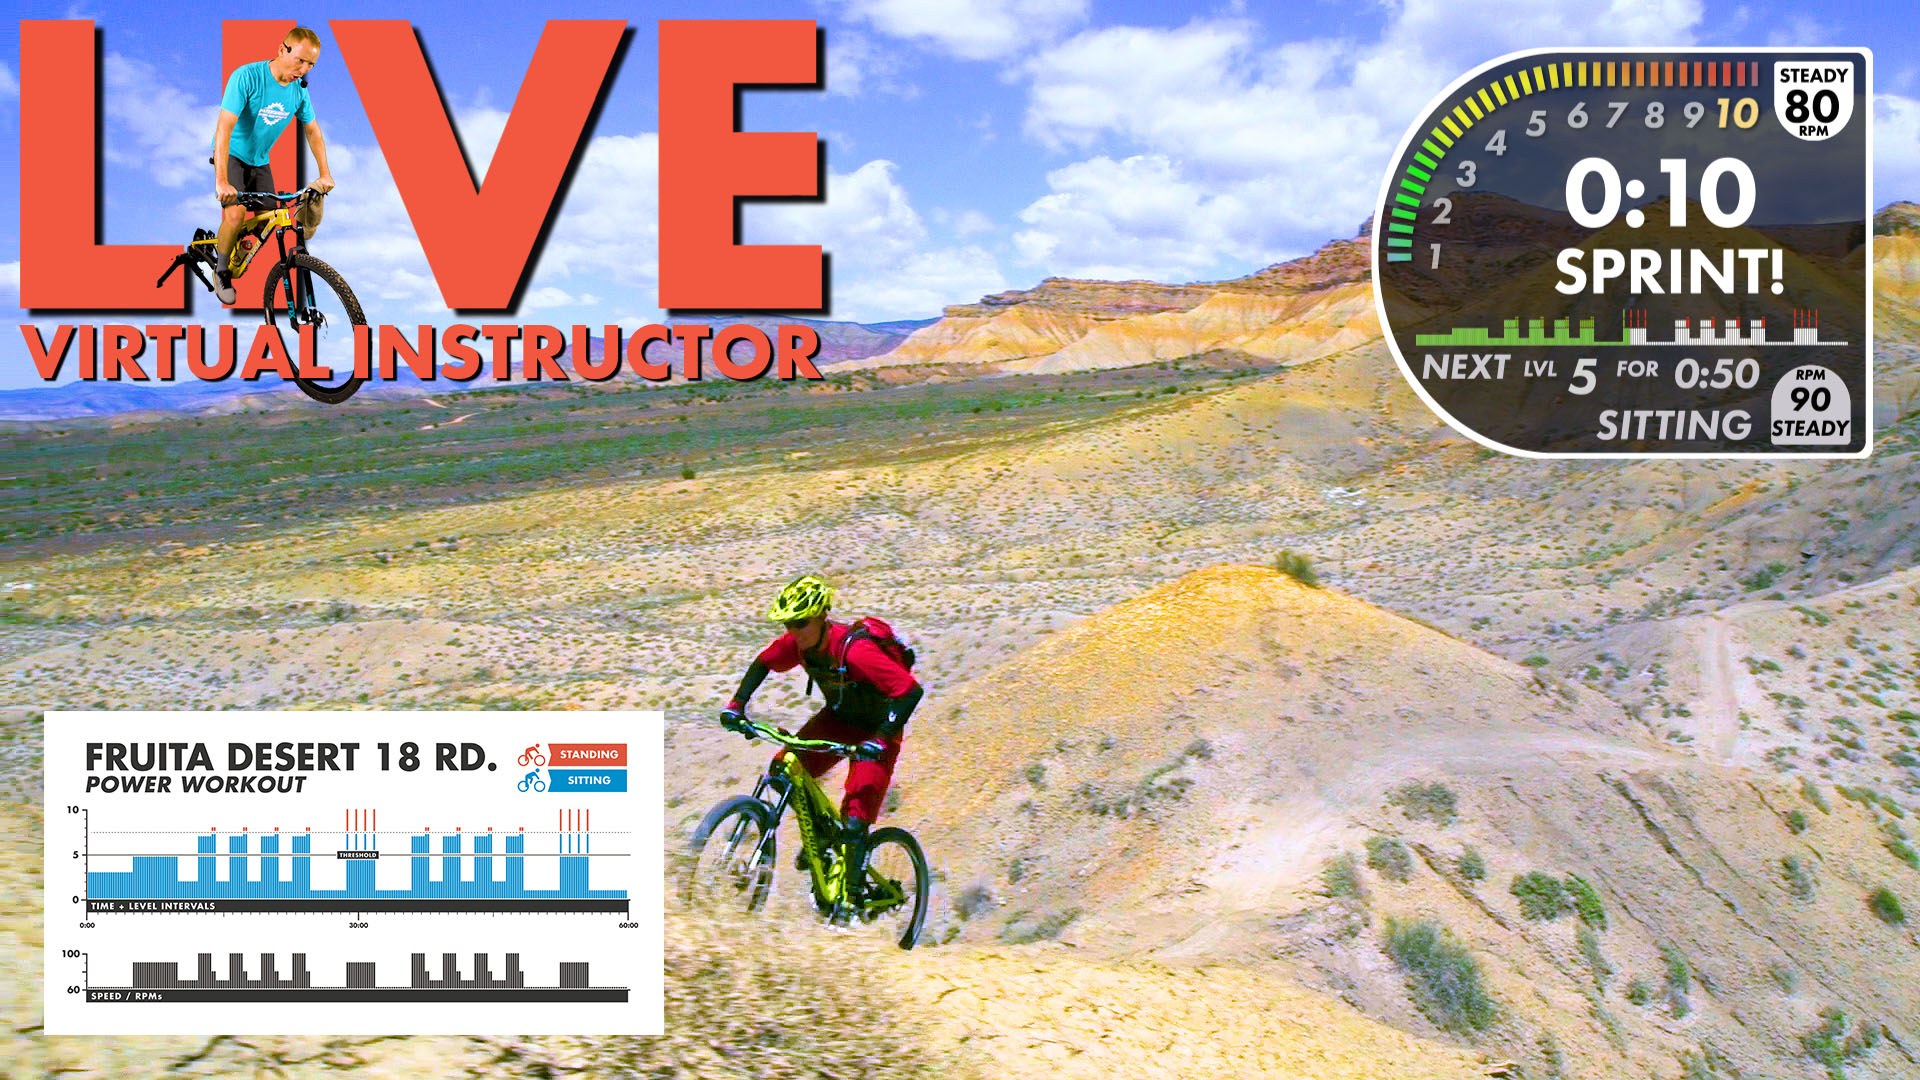 Fruita 18 Road Power Thumbnail Virtual Instructor W-Info Graphic.jpg